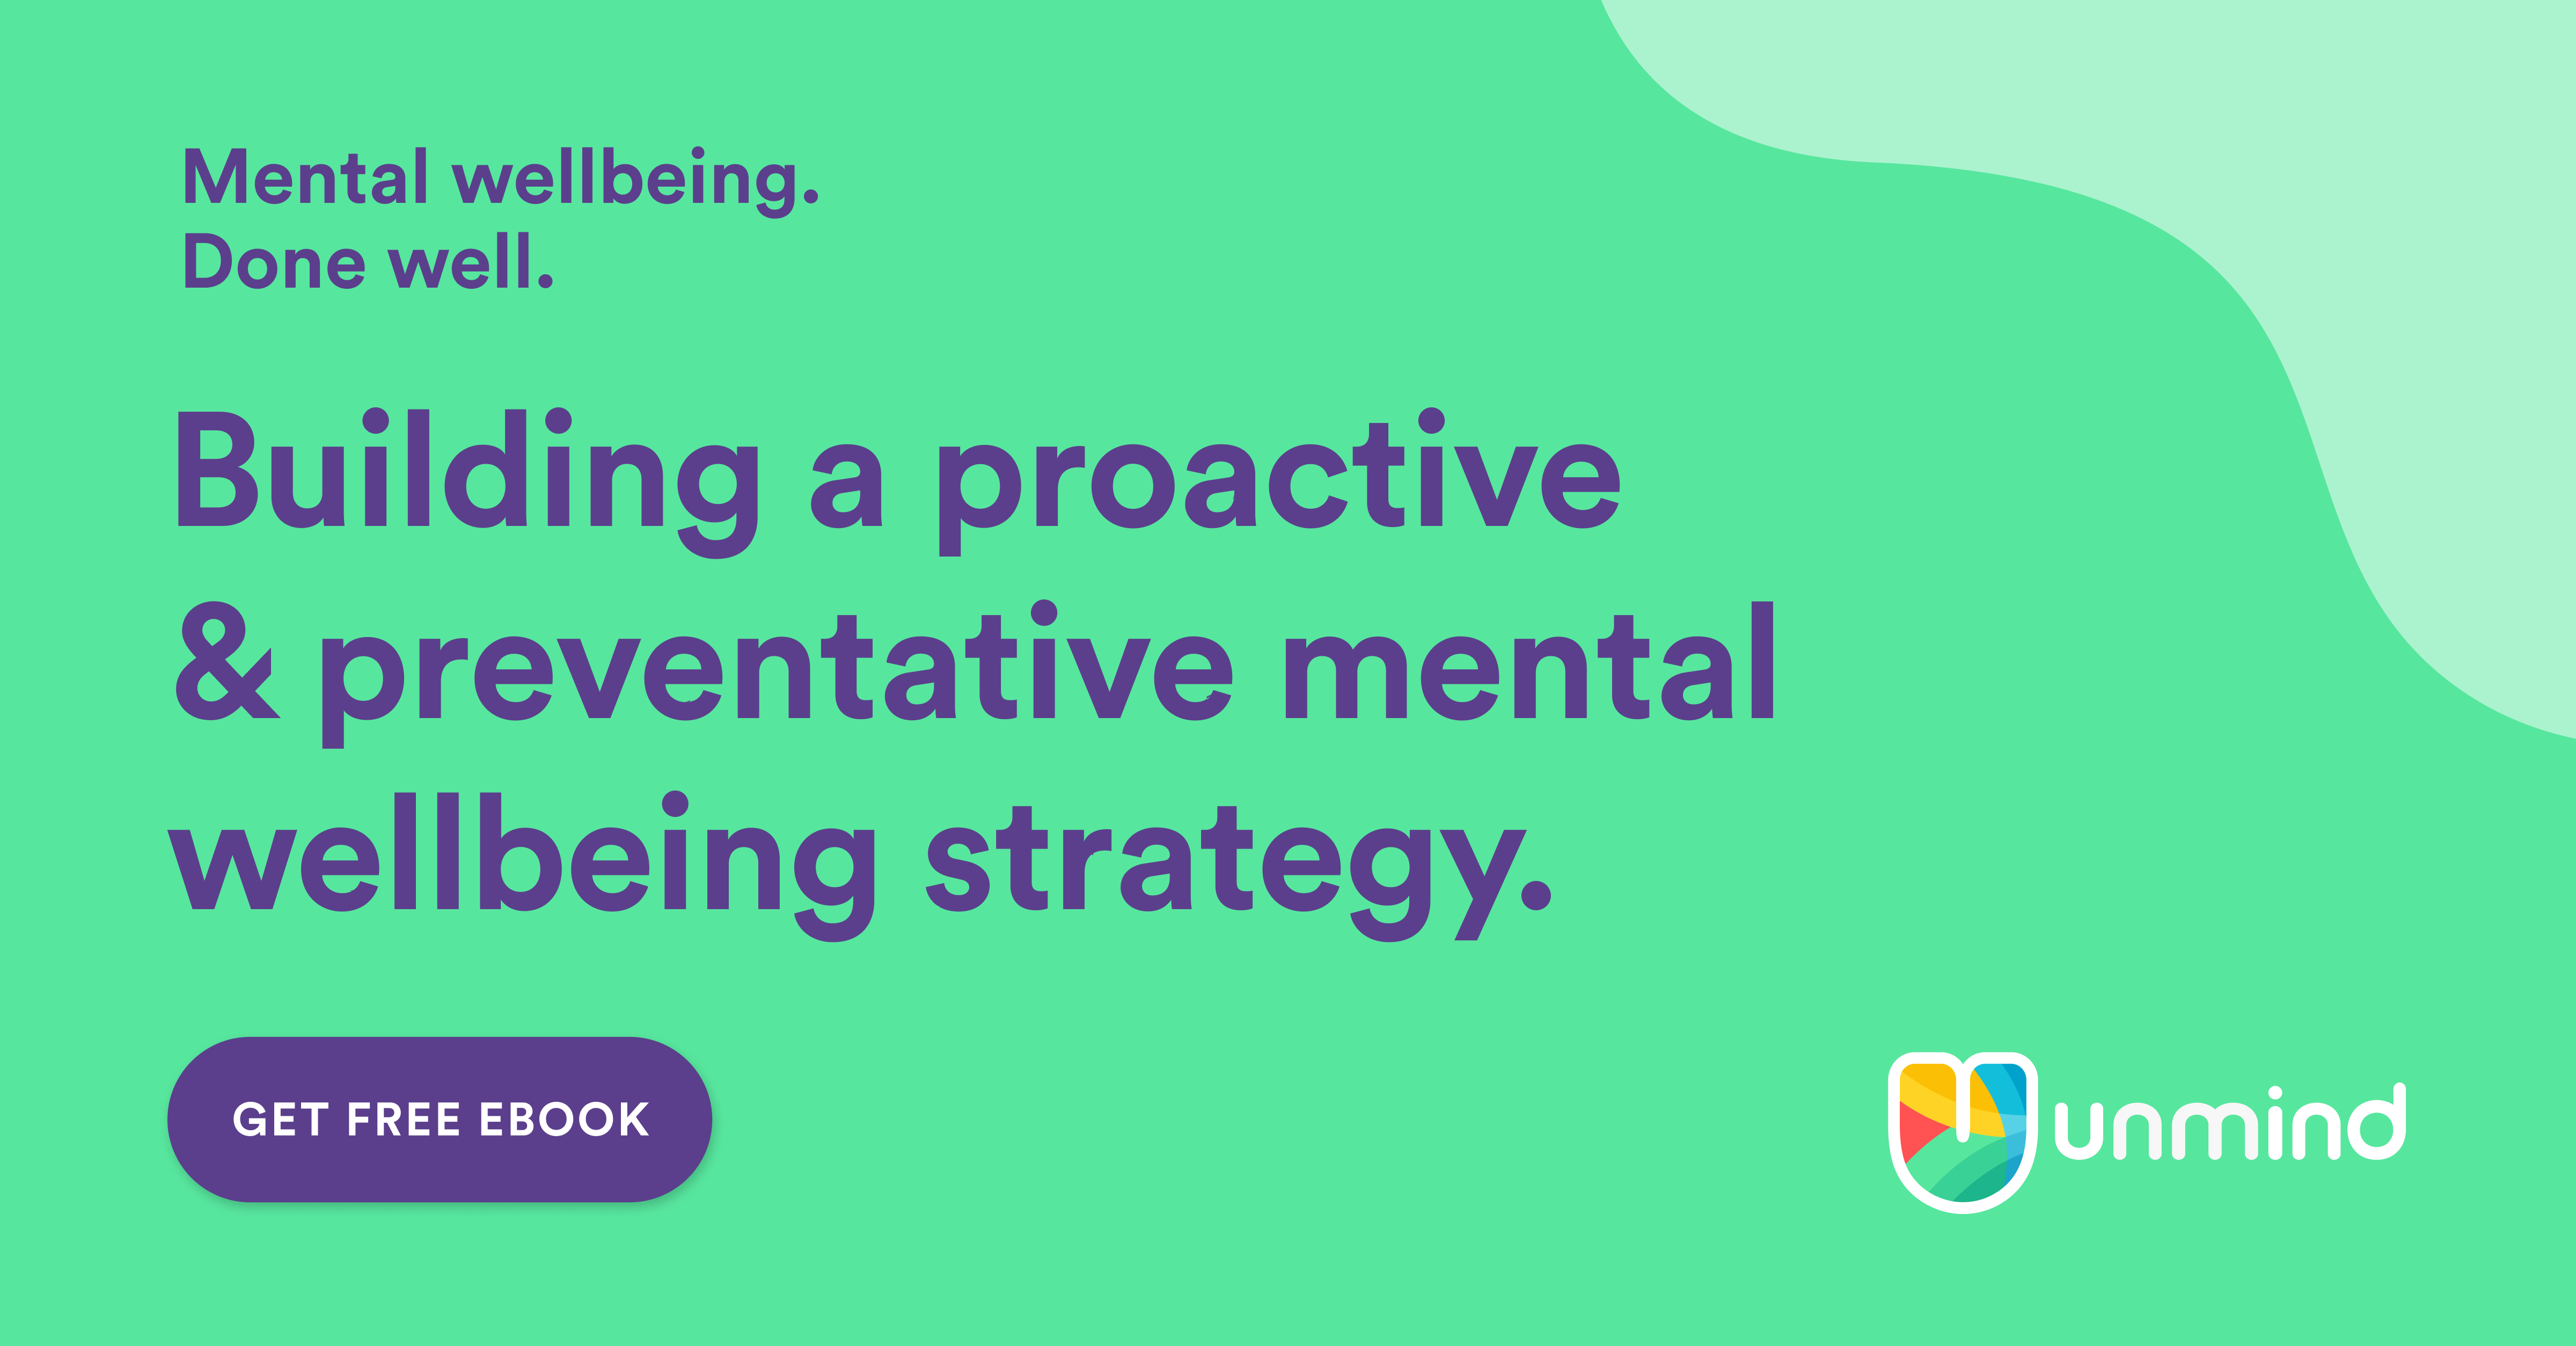 eBook: Building a proactive and preventative mental wellbeing strategy